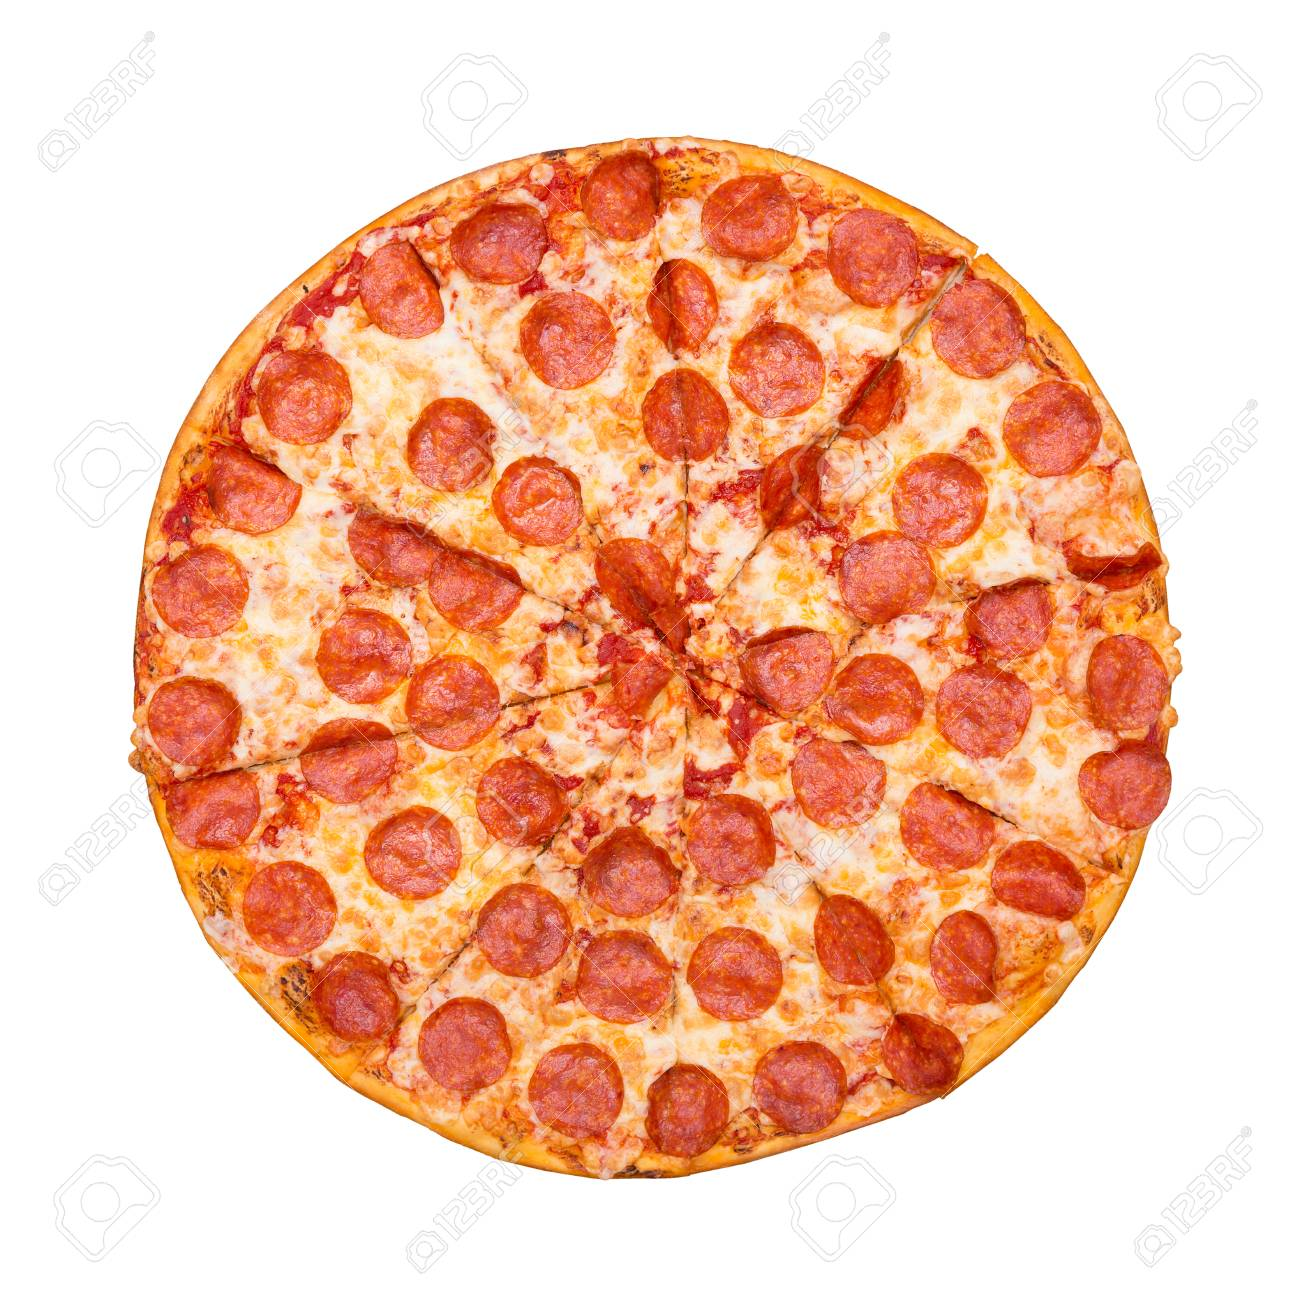 Fresh tasty pizza with pepperoni isolated on white background. Top view. - 121170541